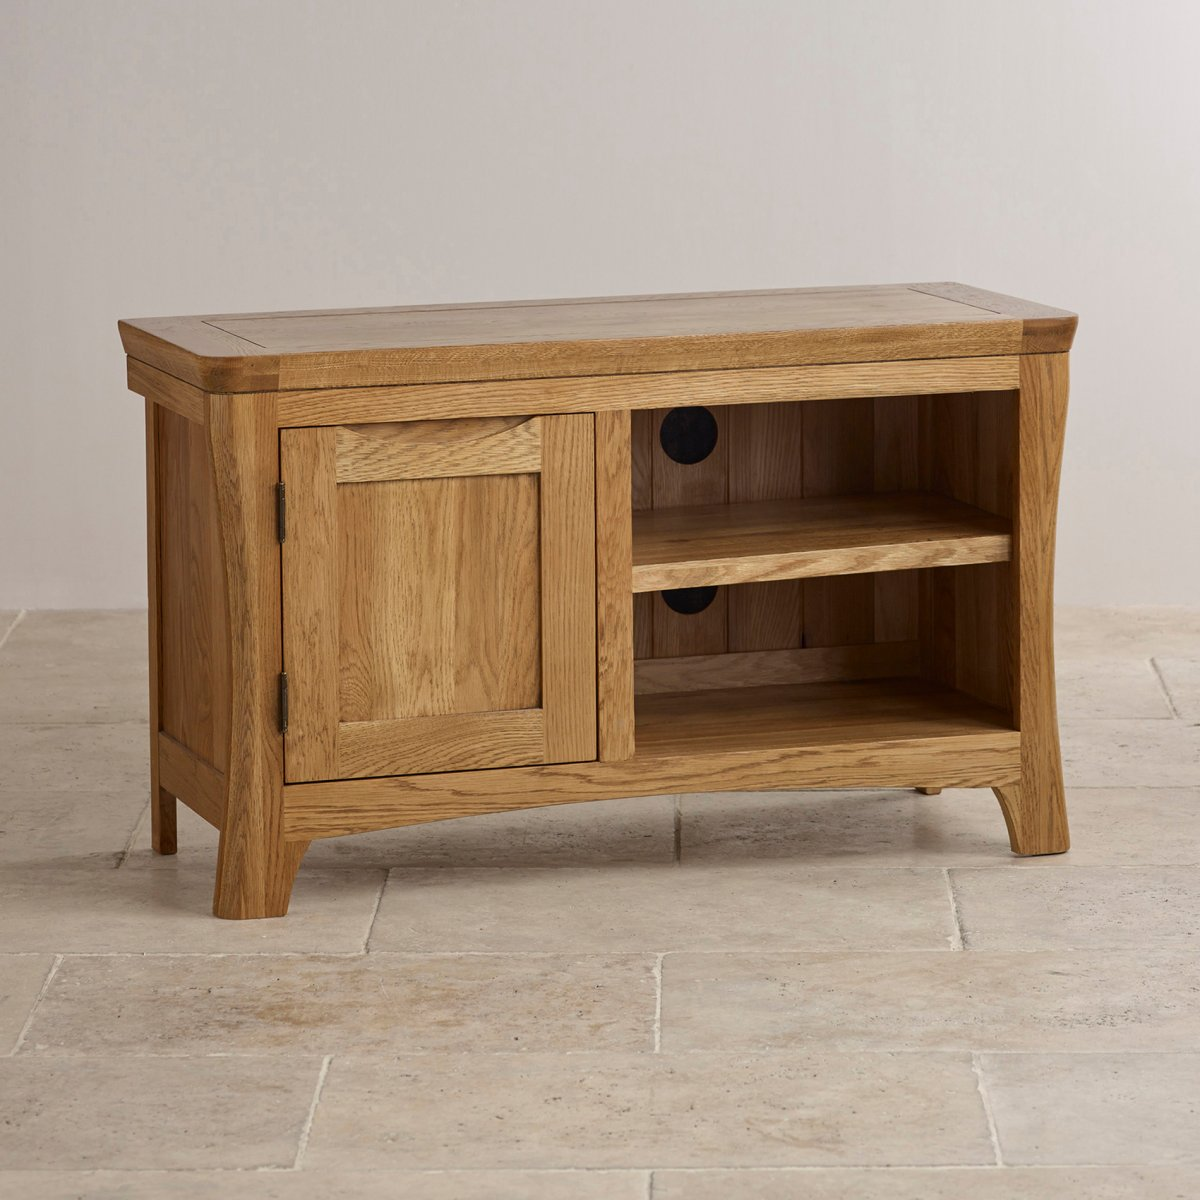 Orrick tv cabinet in rustic solid oak oak furniture land for Oak furniture land